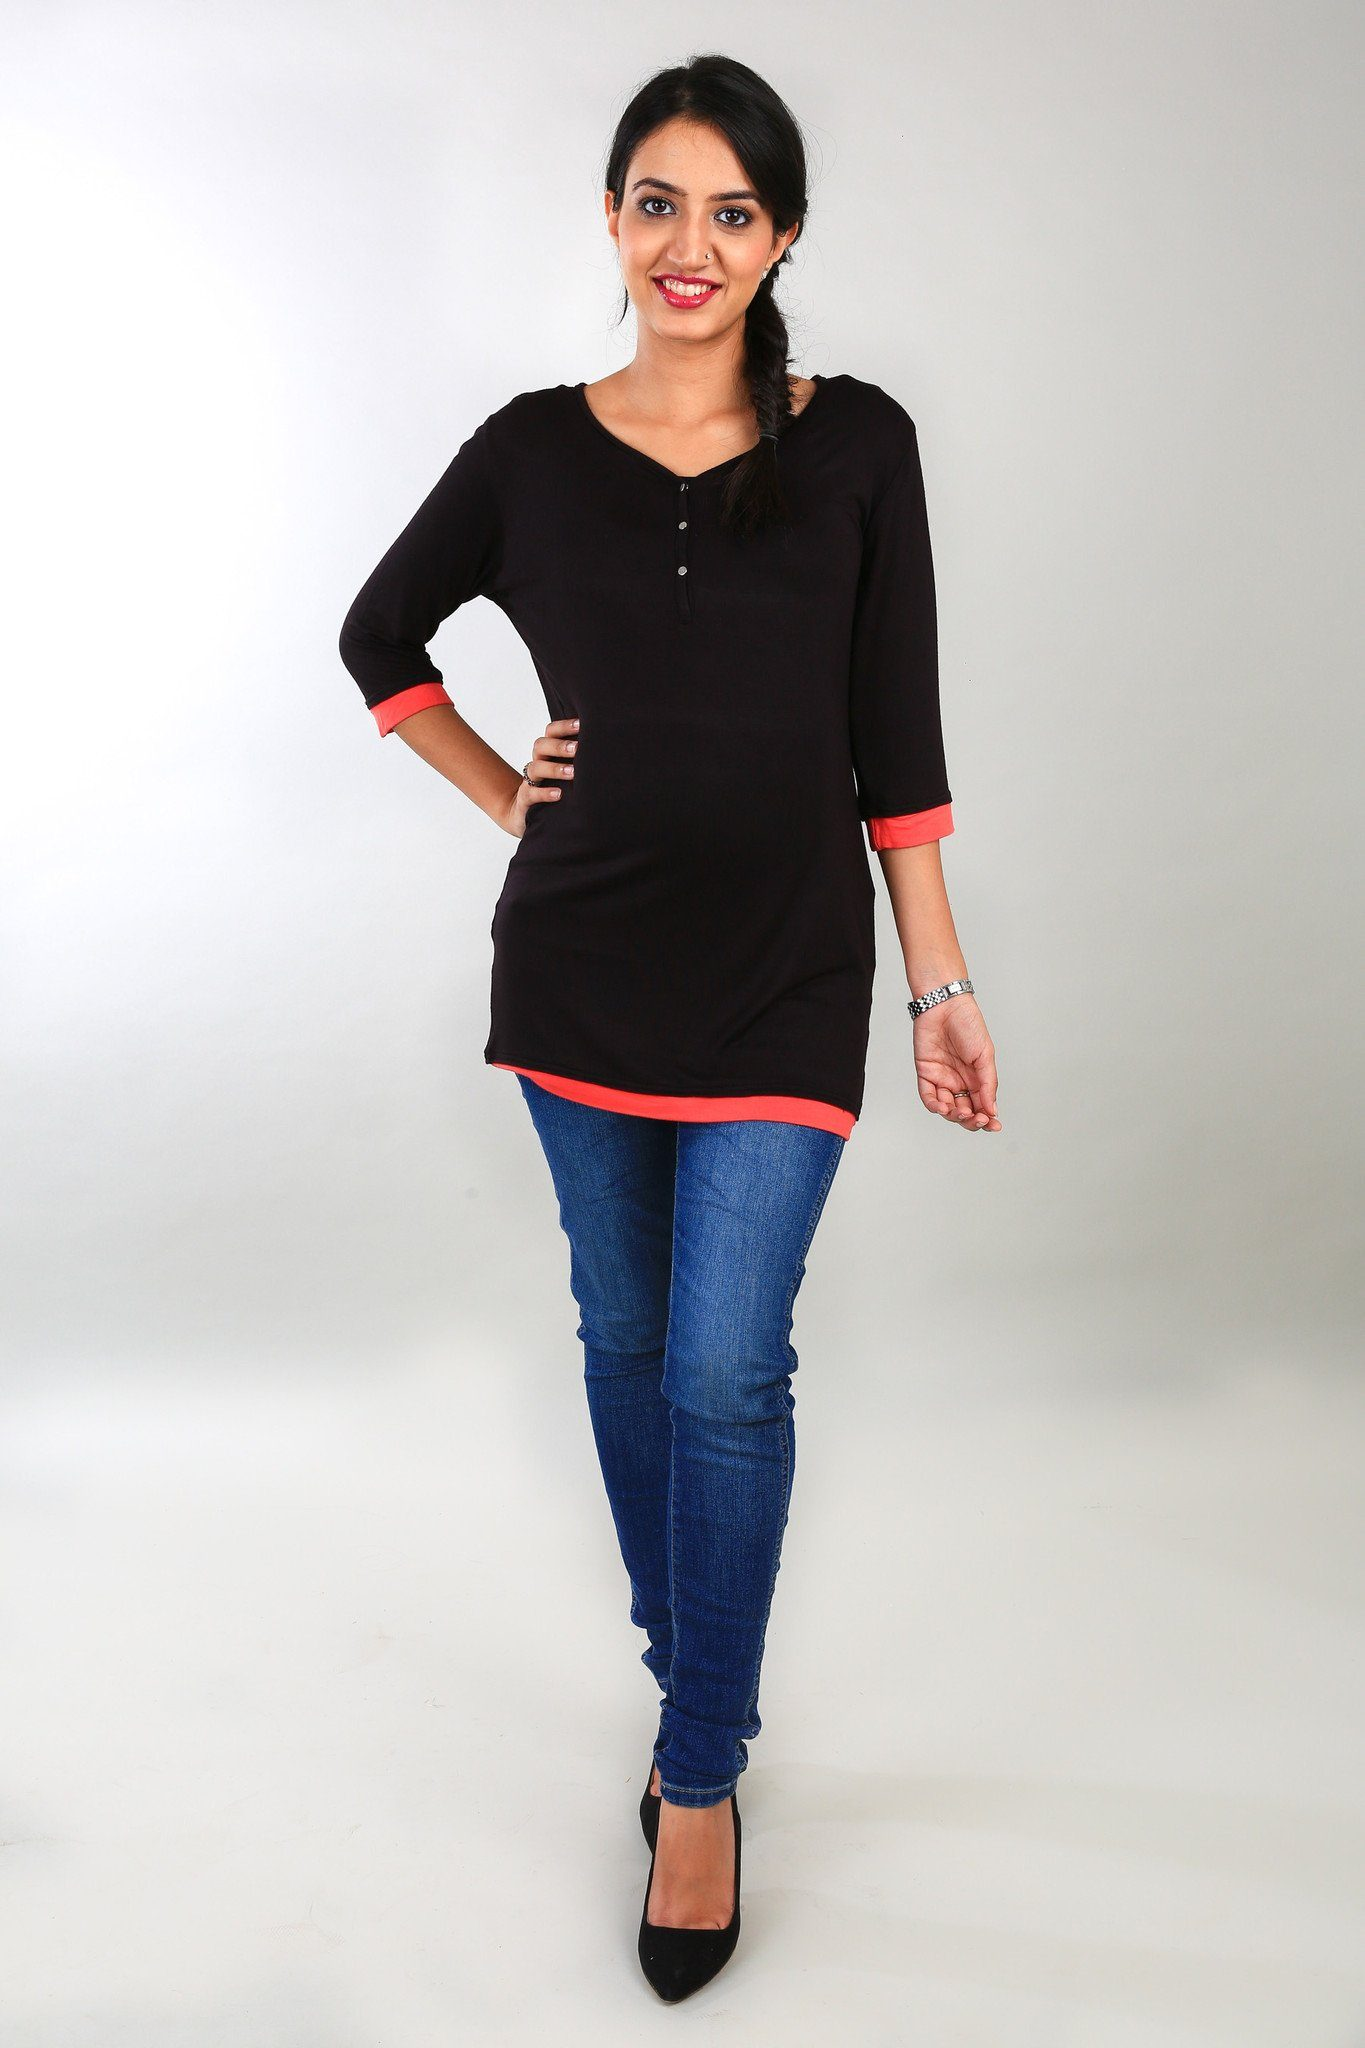 Black 3/4 Sleeves Maternity Top - MOMZJOY.COM - 1